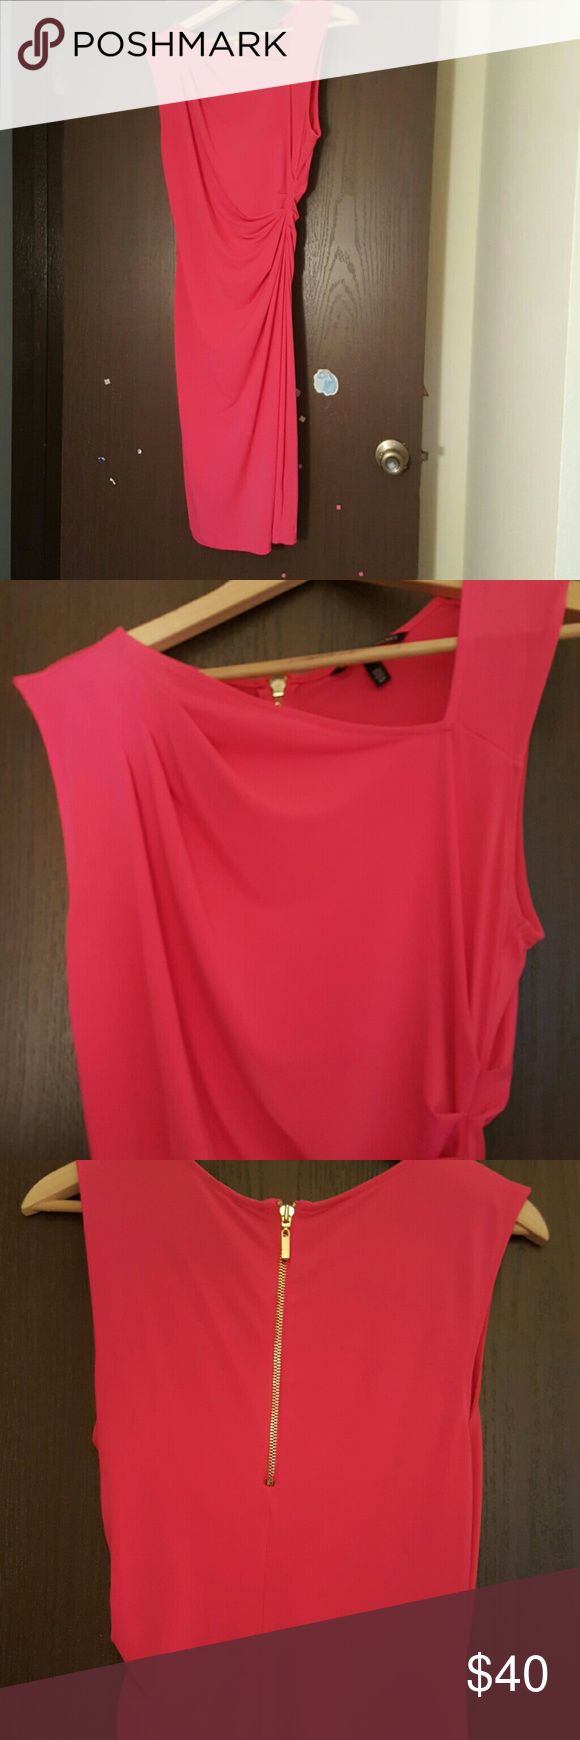 Victorias secret pink dress with asymmetrical neck Very sexy dress in hot pink color.  Fit like m. In good condition. Victoria's Secret Dresses Midi